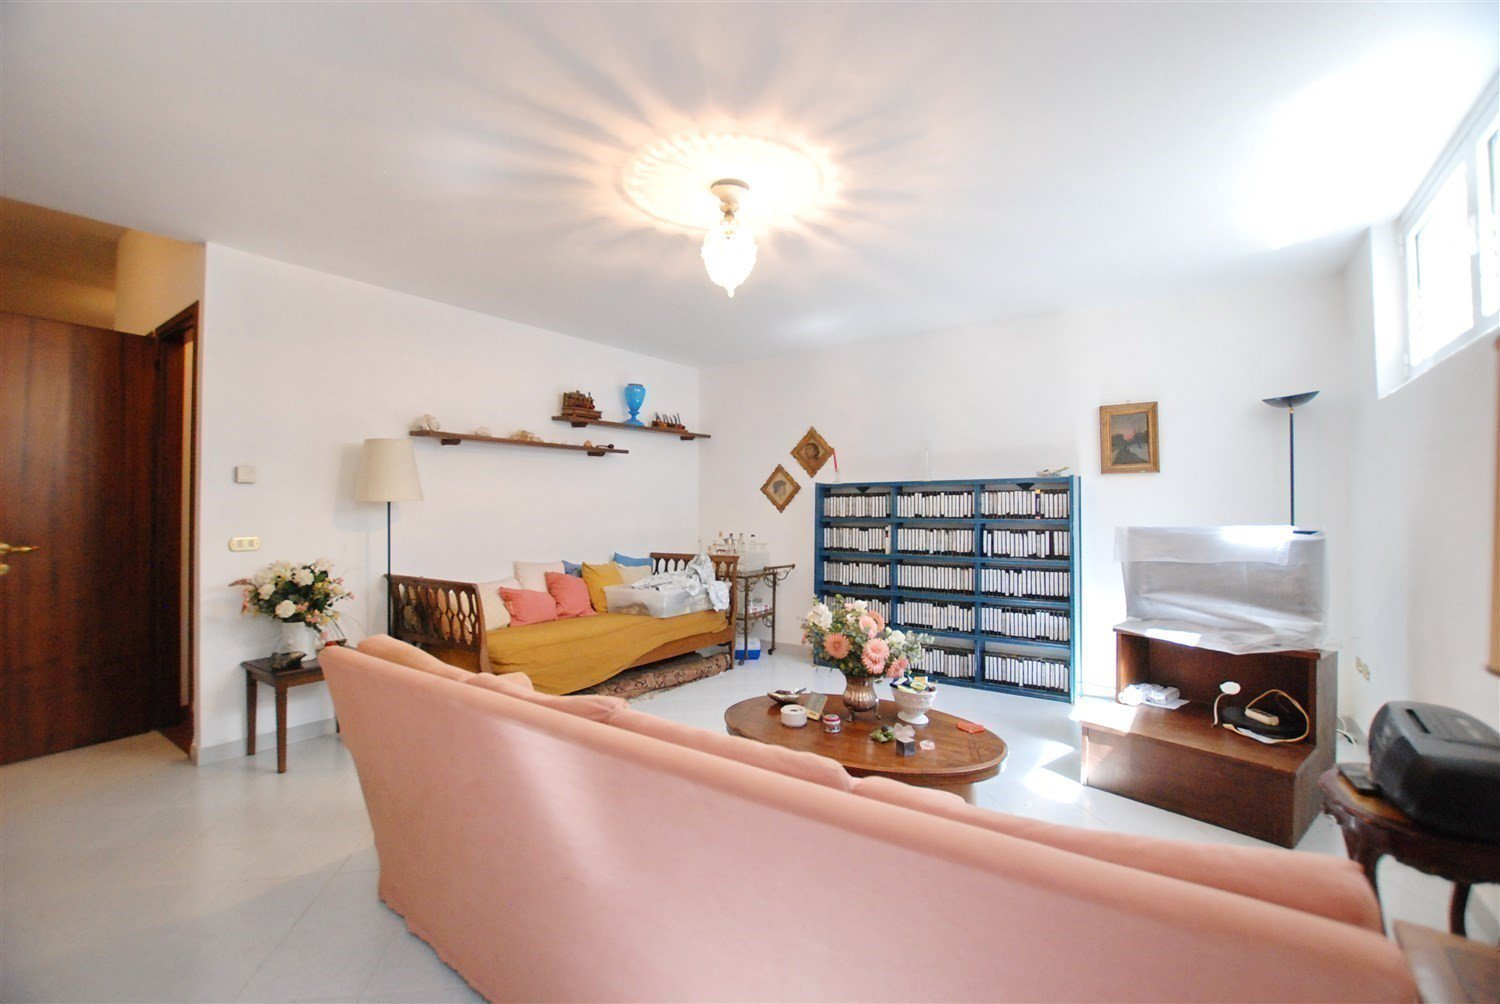 Terraced house for sale in Gignese, based in Vezzo - modern sitting room